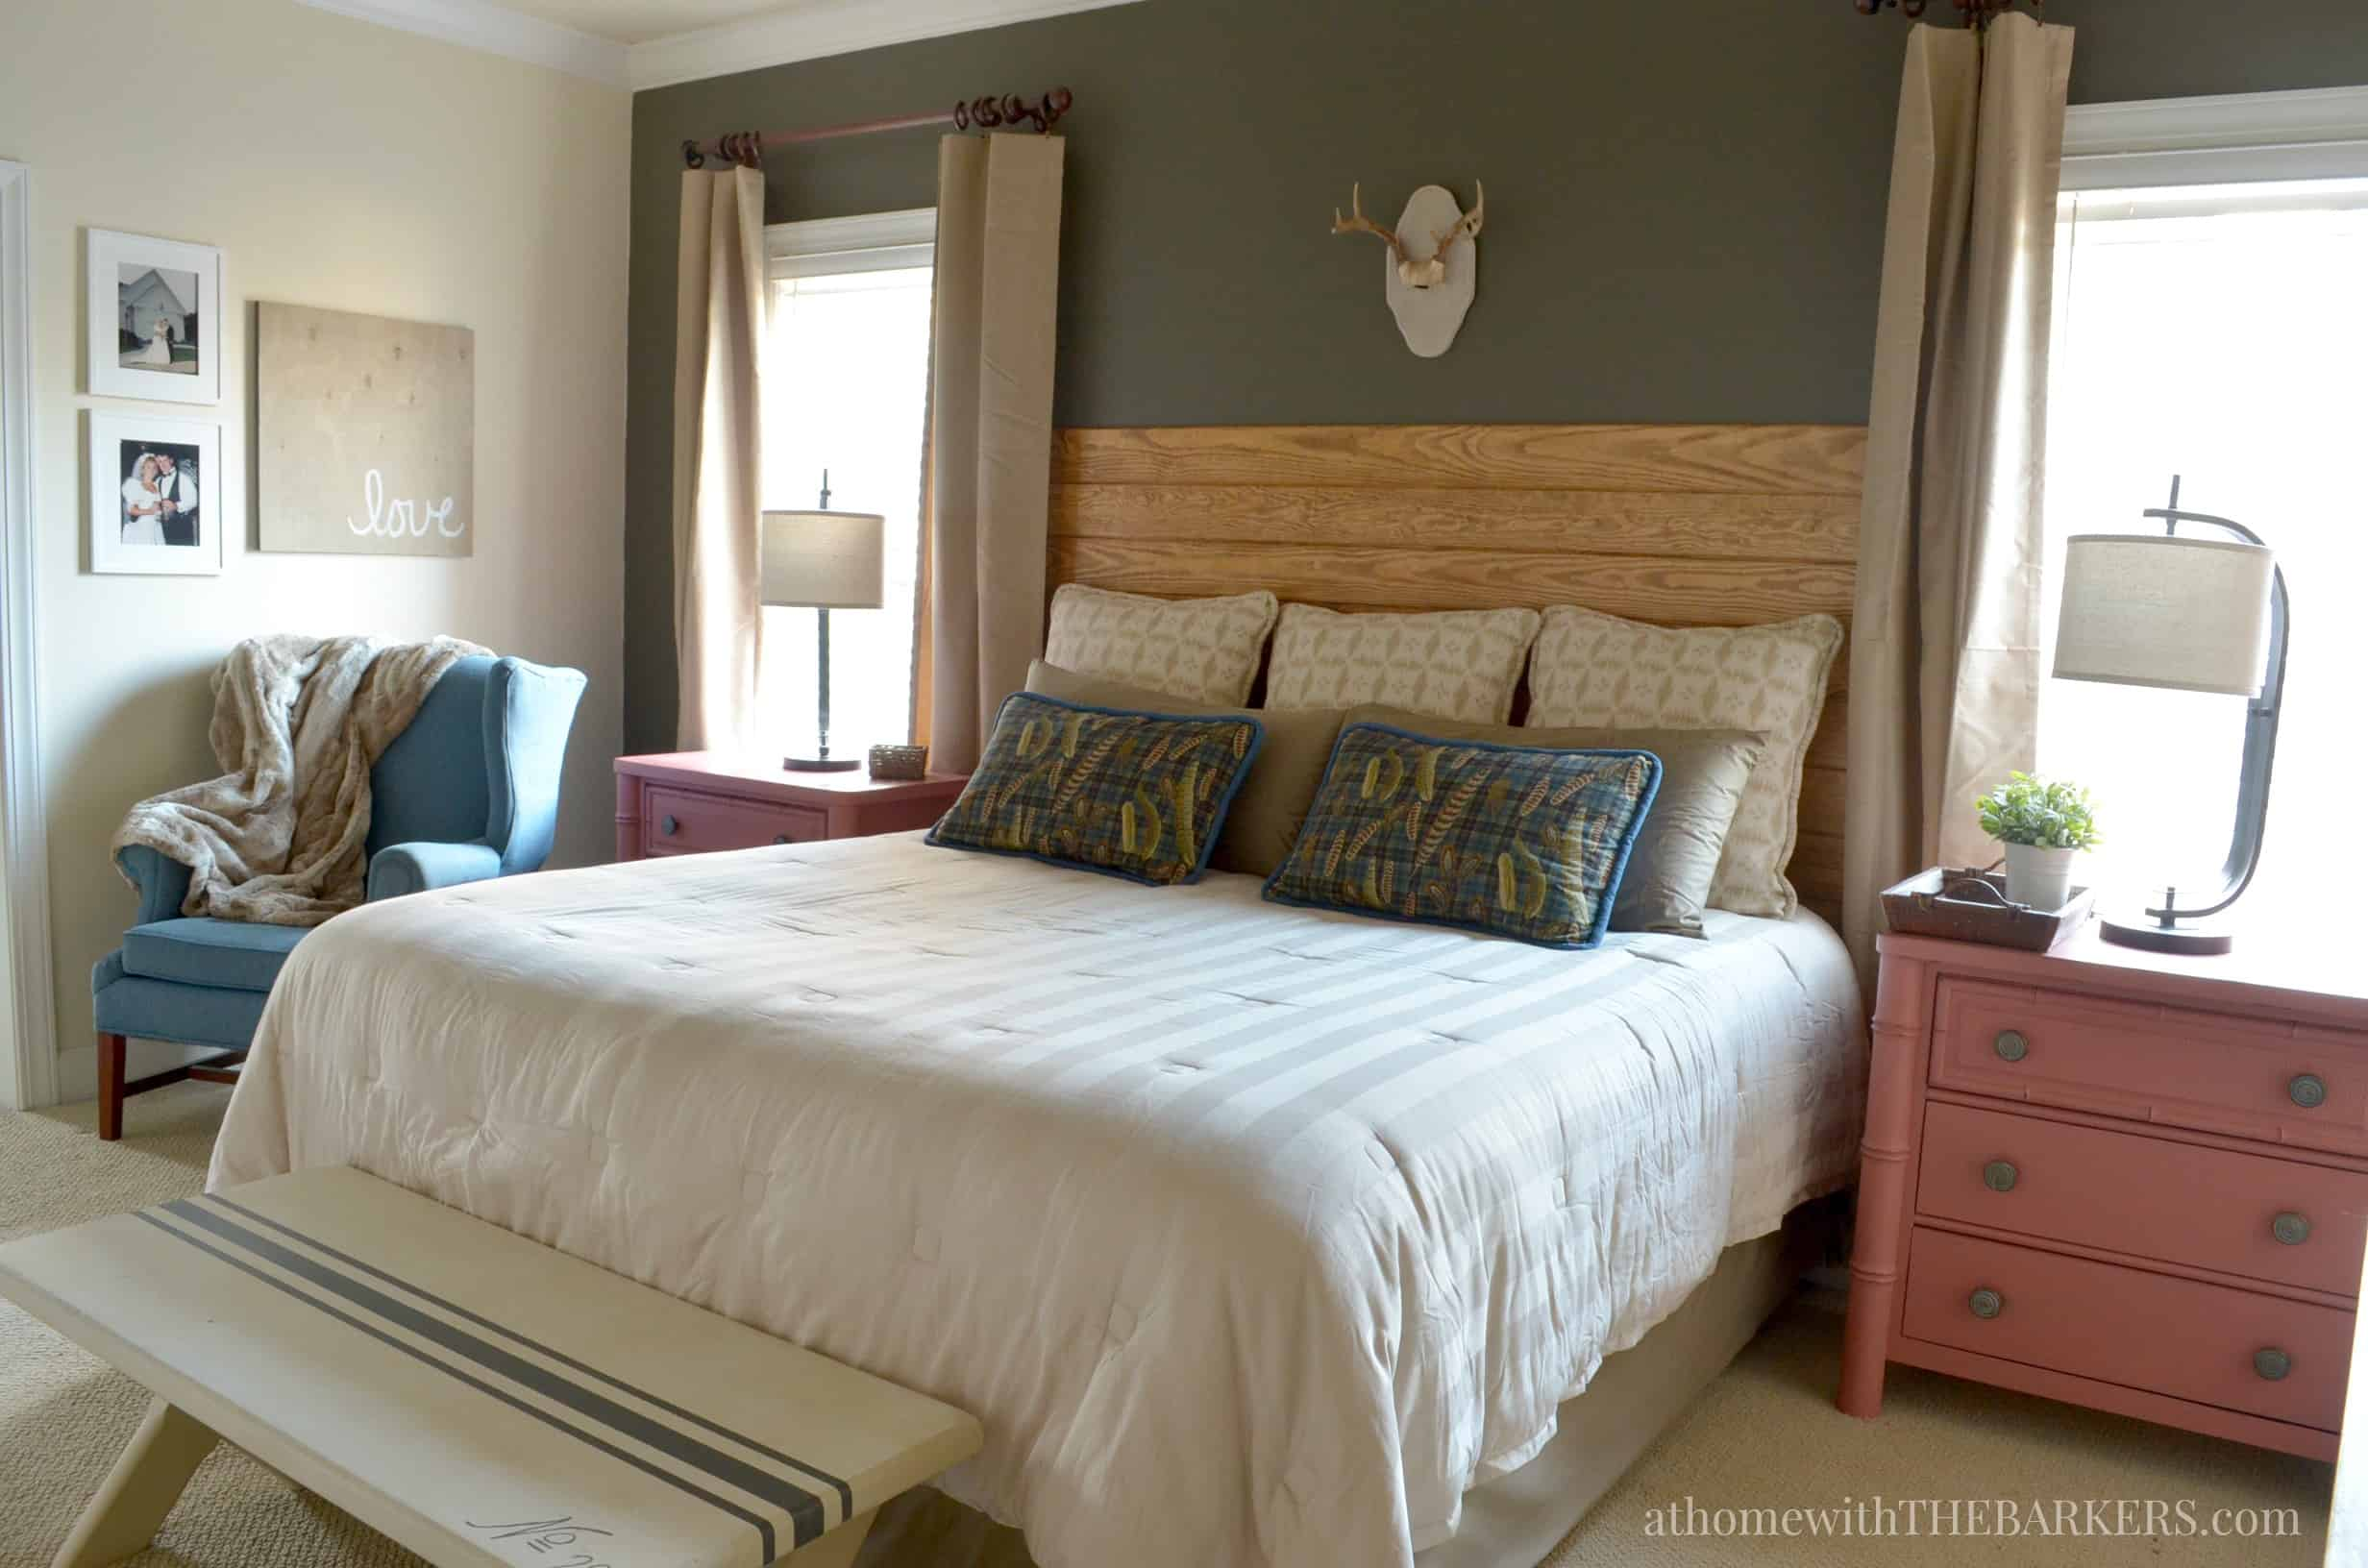 Master bedroom makeover update at home with the barkers - Bedrooms images ...